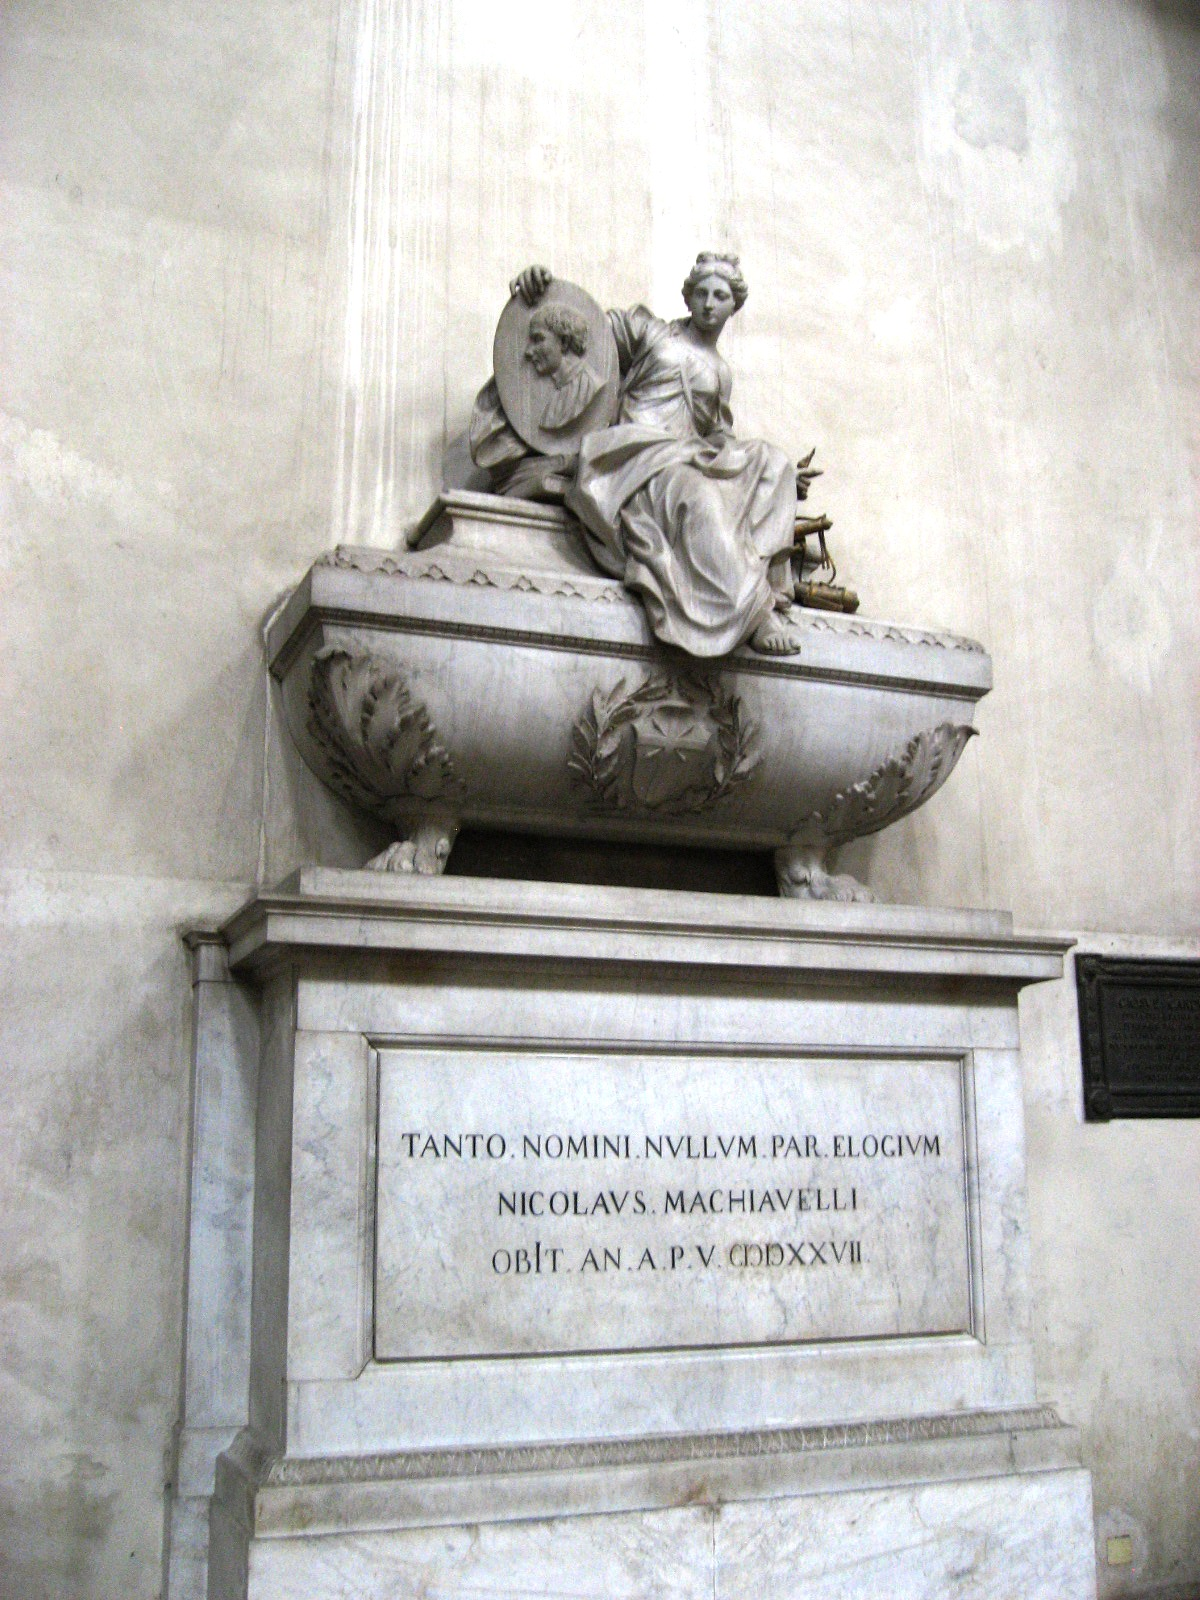 the prince by niccolo machiavelli vs book of the courtier by english tomb of niccolograve machiavelli in the basilica of santa croce in florence